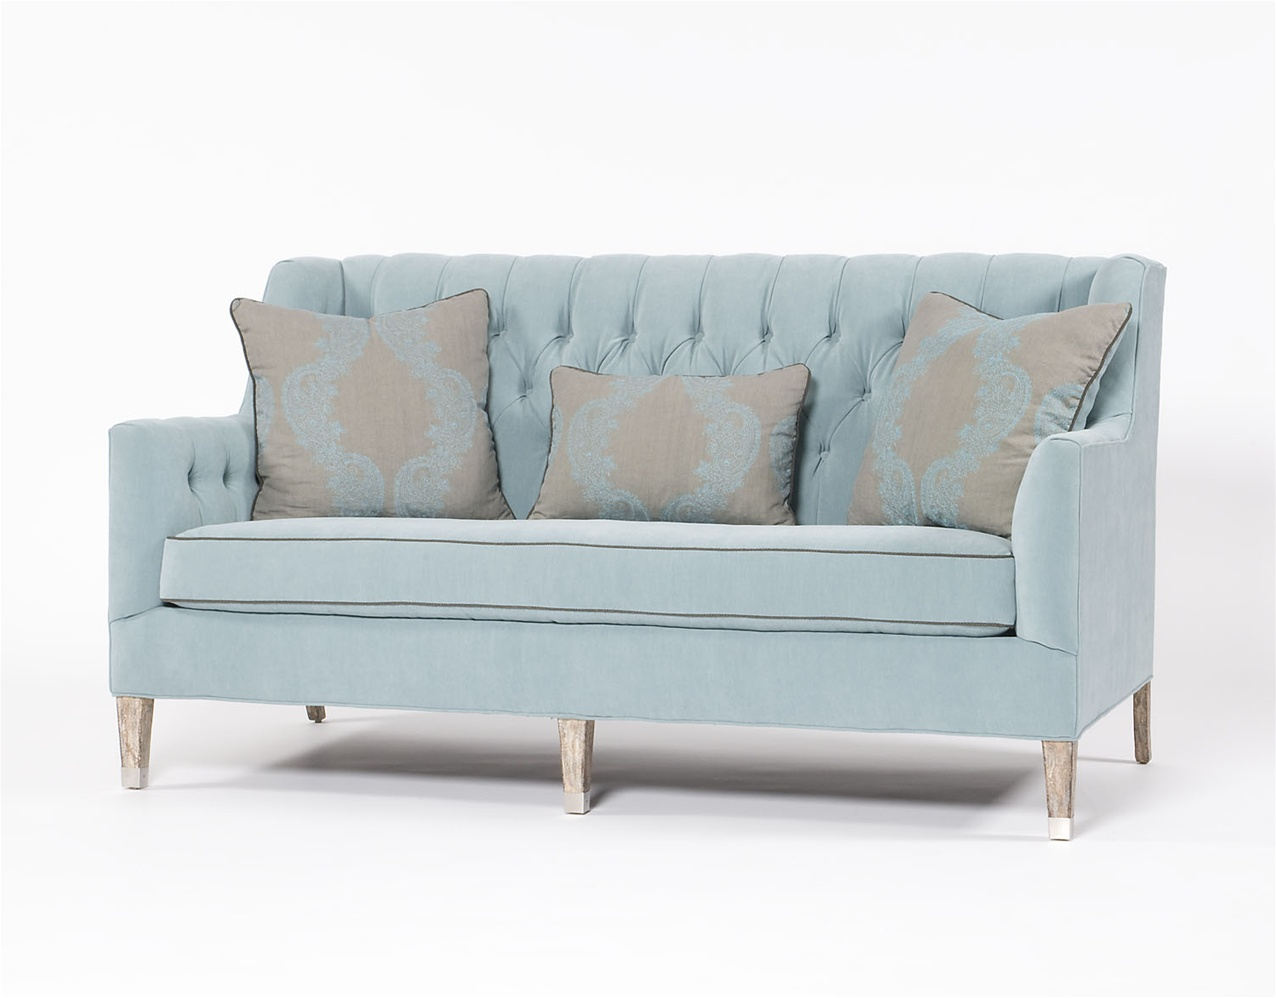 Traditional sofa tufted blue three person couch for 3 on a couch